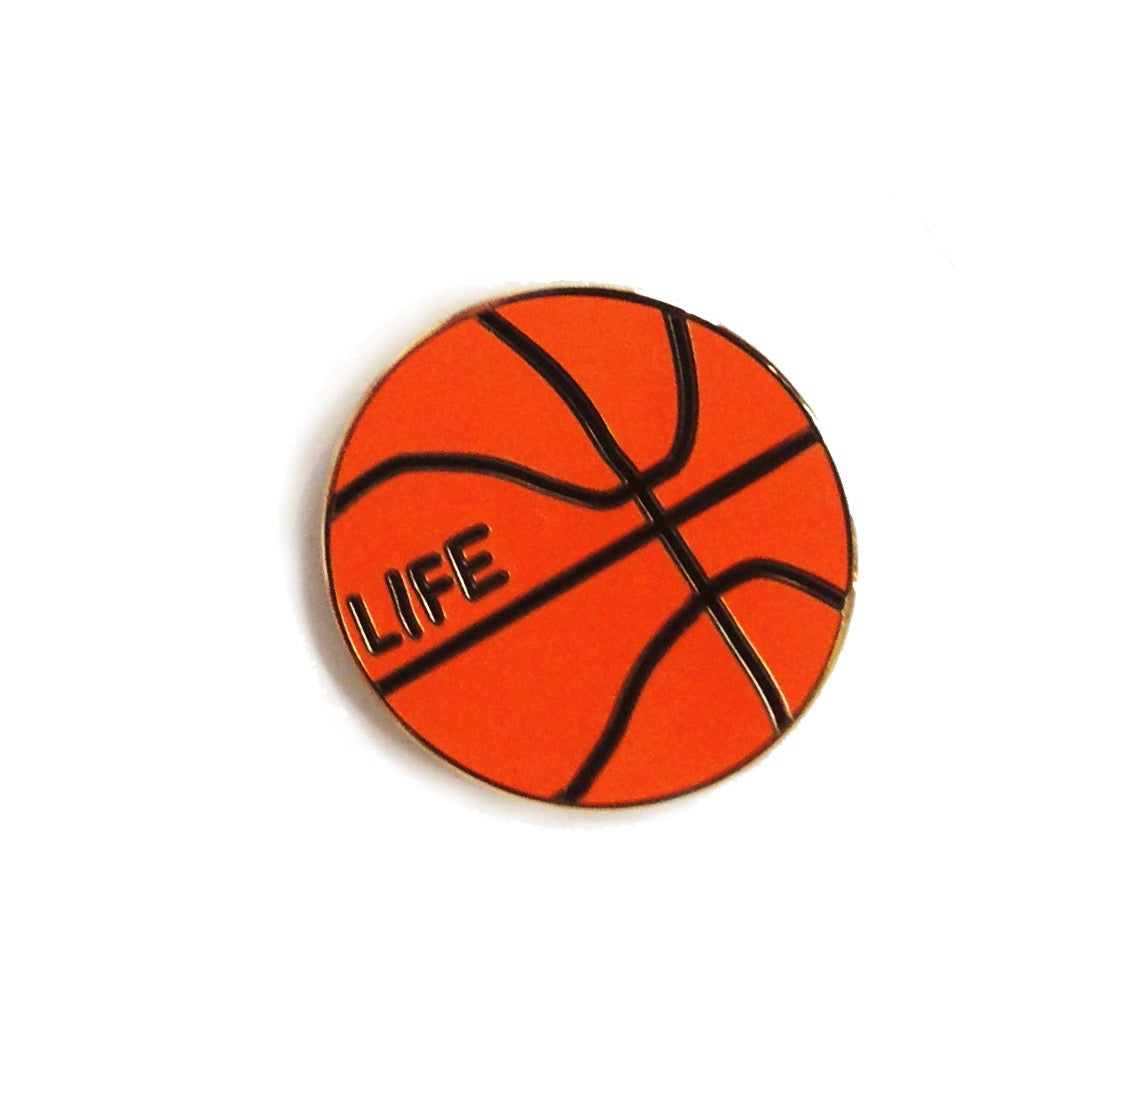 Image of The One with Ball is Life Pin